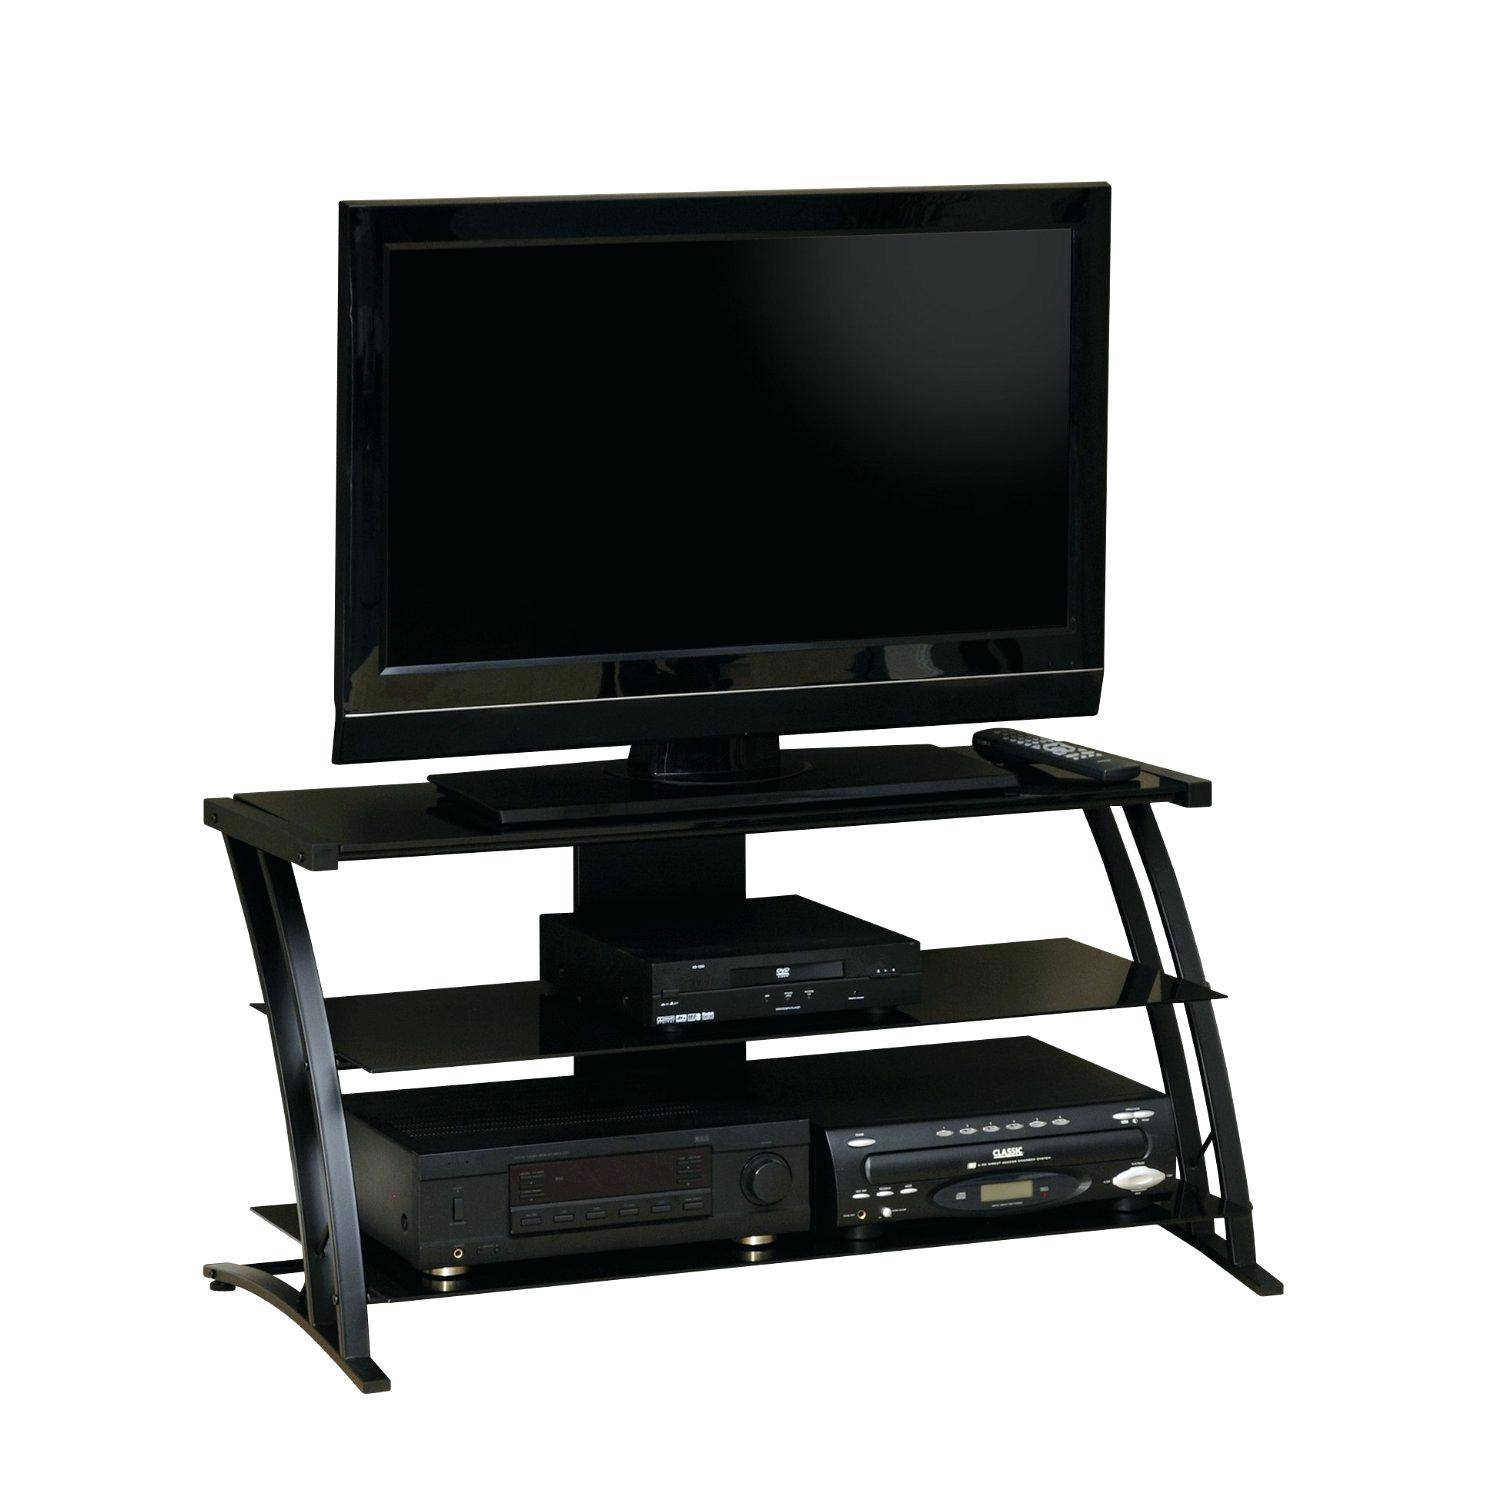 Tv Stand : Outstanding Small White Tv Stand With Mount And 2 Glass Throughout Smoked Glass Tv Stands (View 11 of 15)